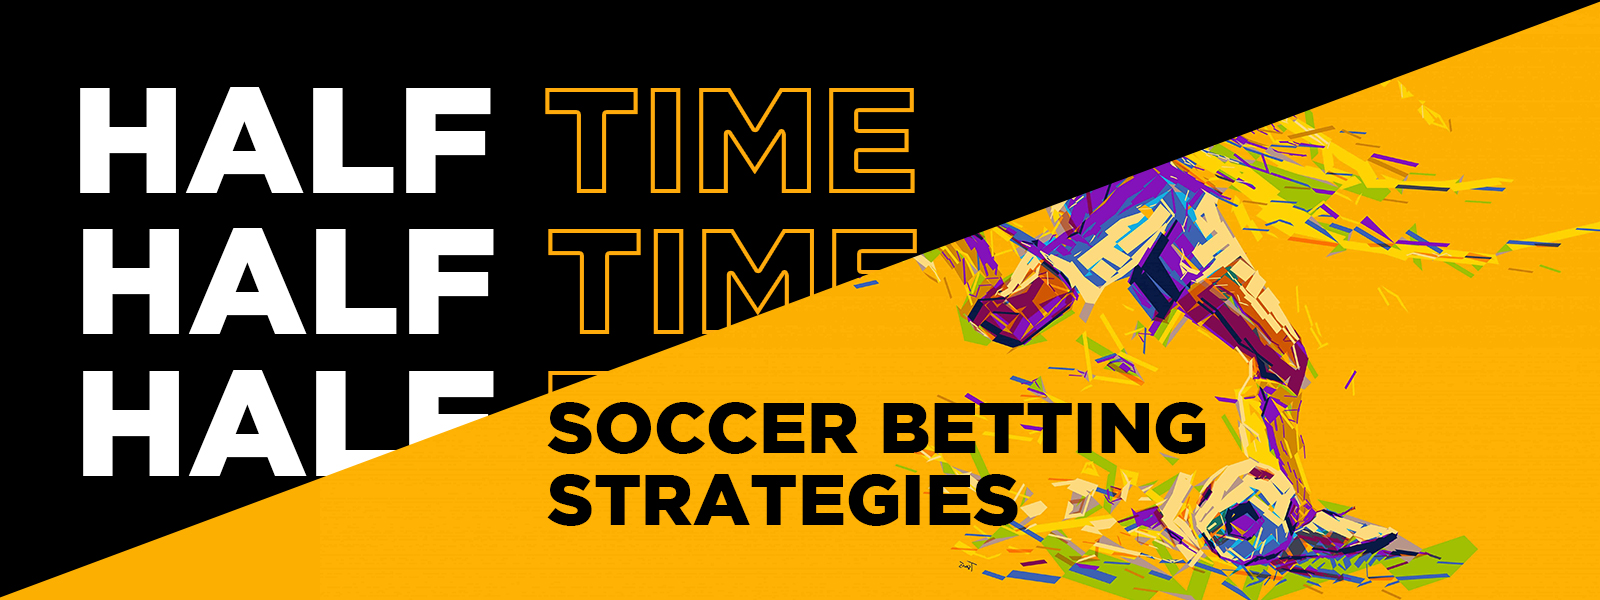 Half Time Soccer Betting Strategies